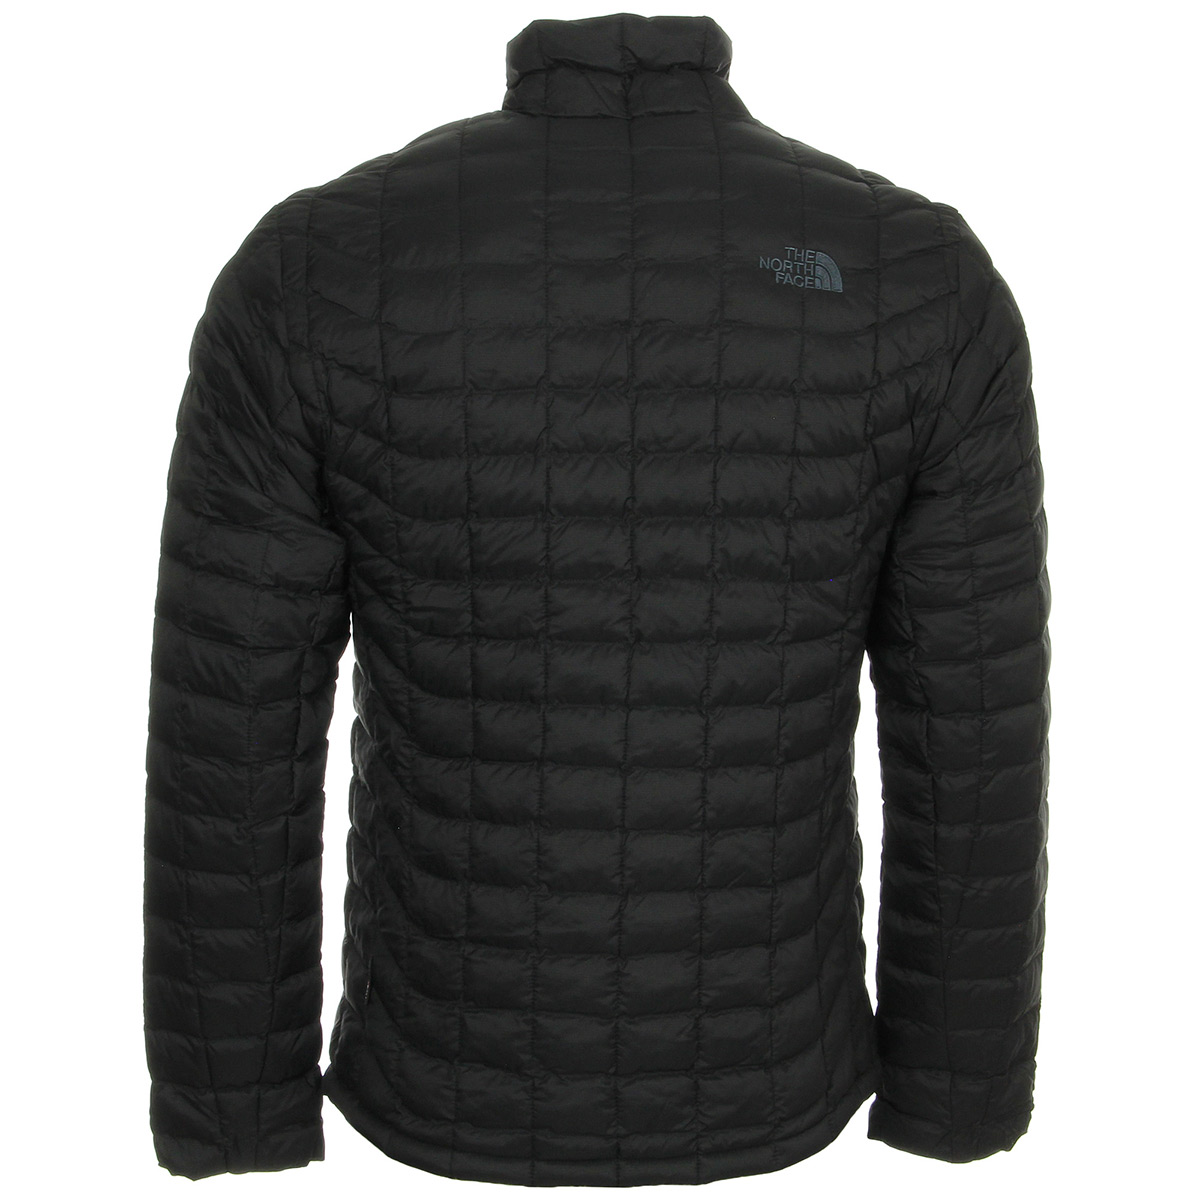 the north face thermoball full zip jacket t9382cxym. Black Bedroom Furniture Sets. Home Design Ideas